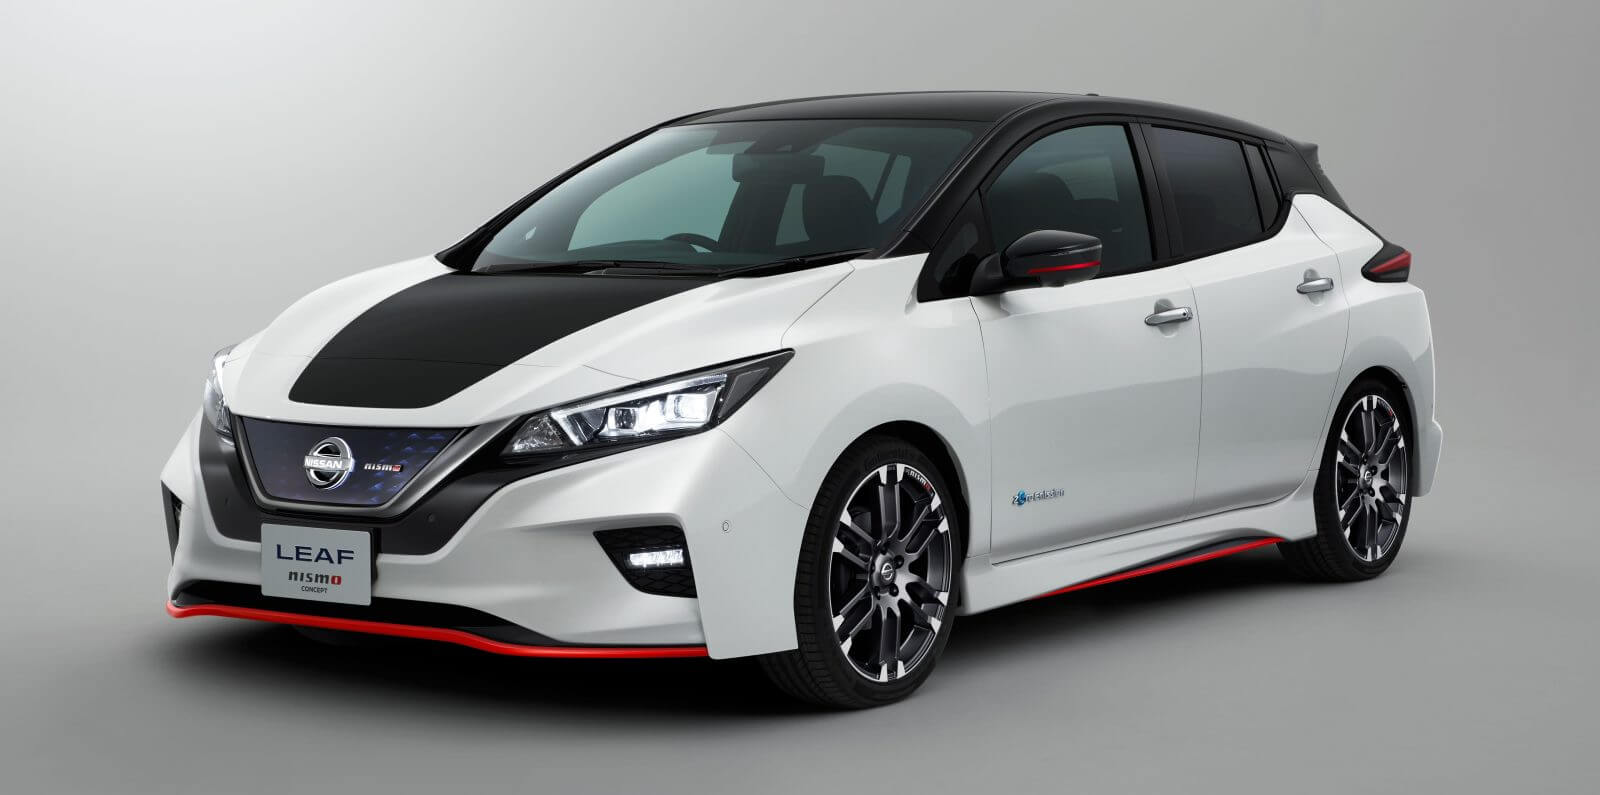 The Original Nissan Leaf Launched On Auto Market In 2010 As A High Performing All Electric Car It Was First That Produced